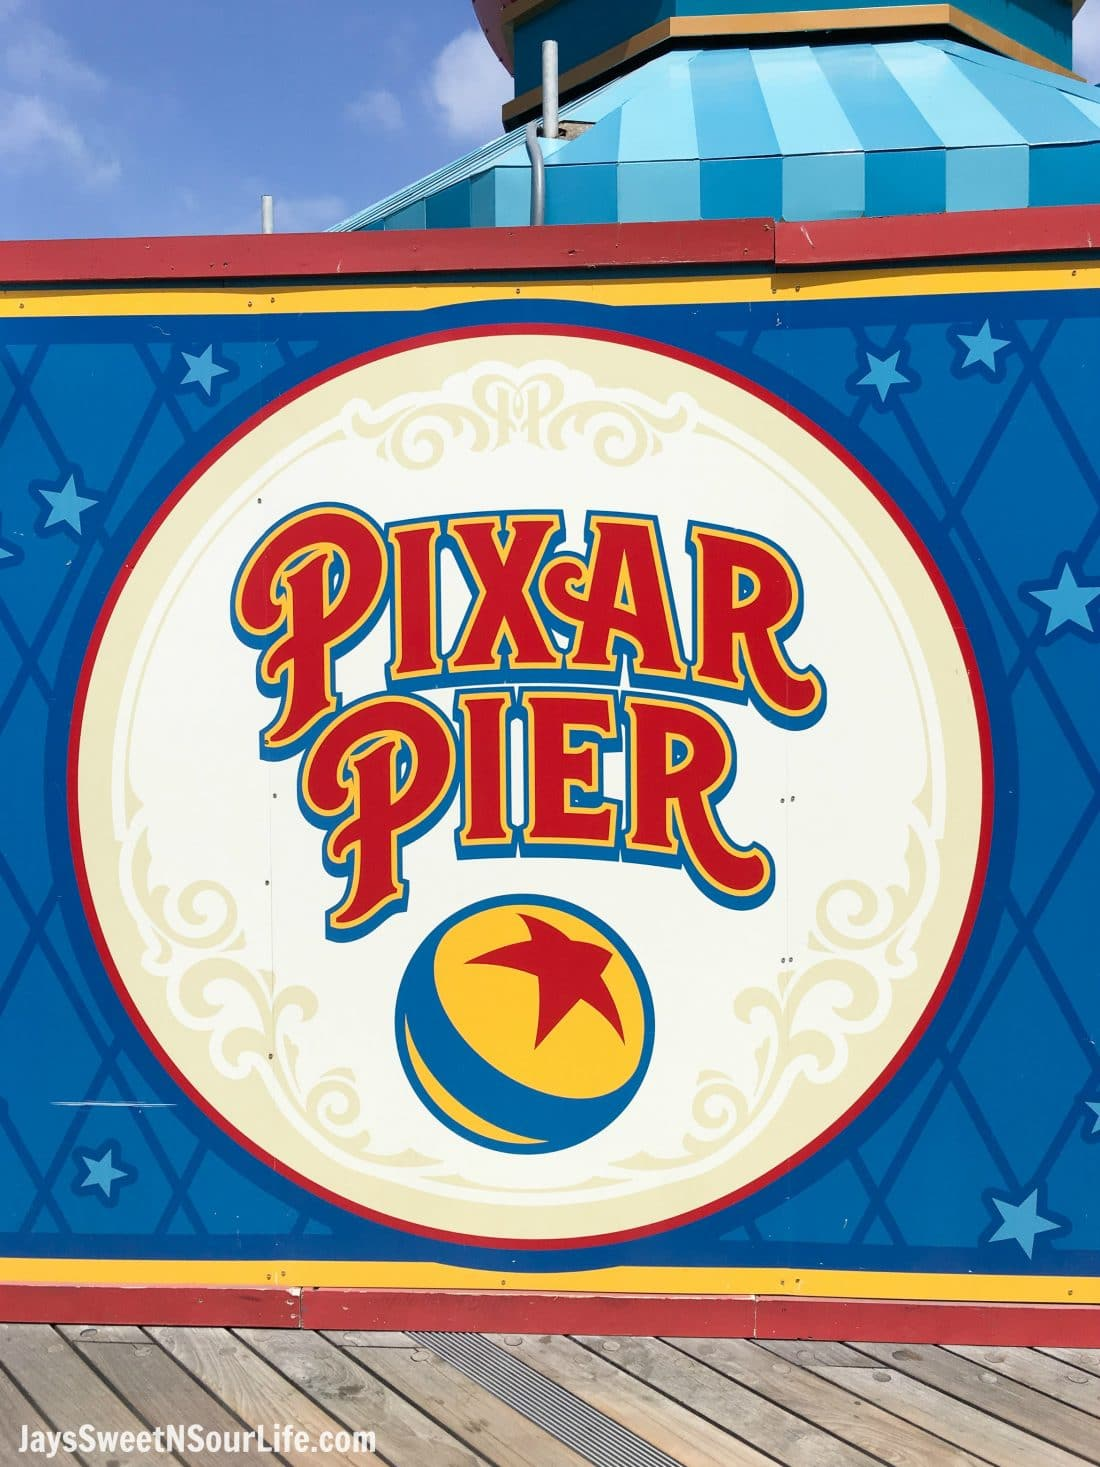 Pixar Pier at Disneyland. Pixar Fest at Disneyland runs from April 13 through September 3rd.